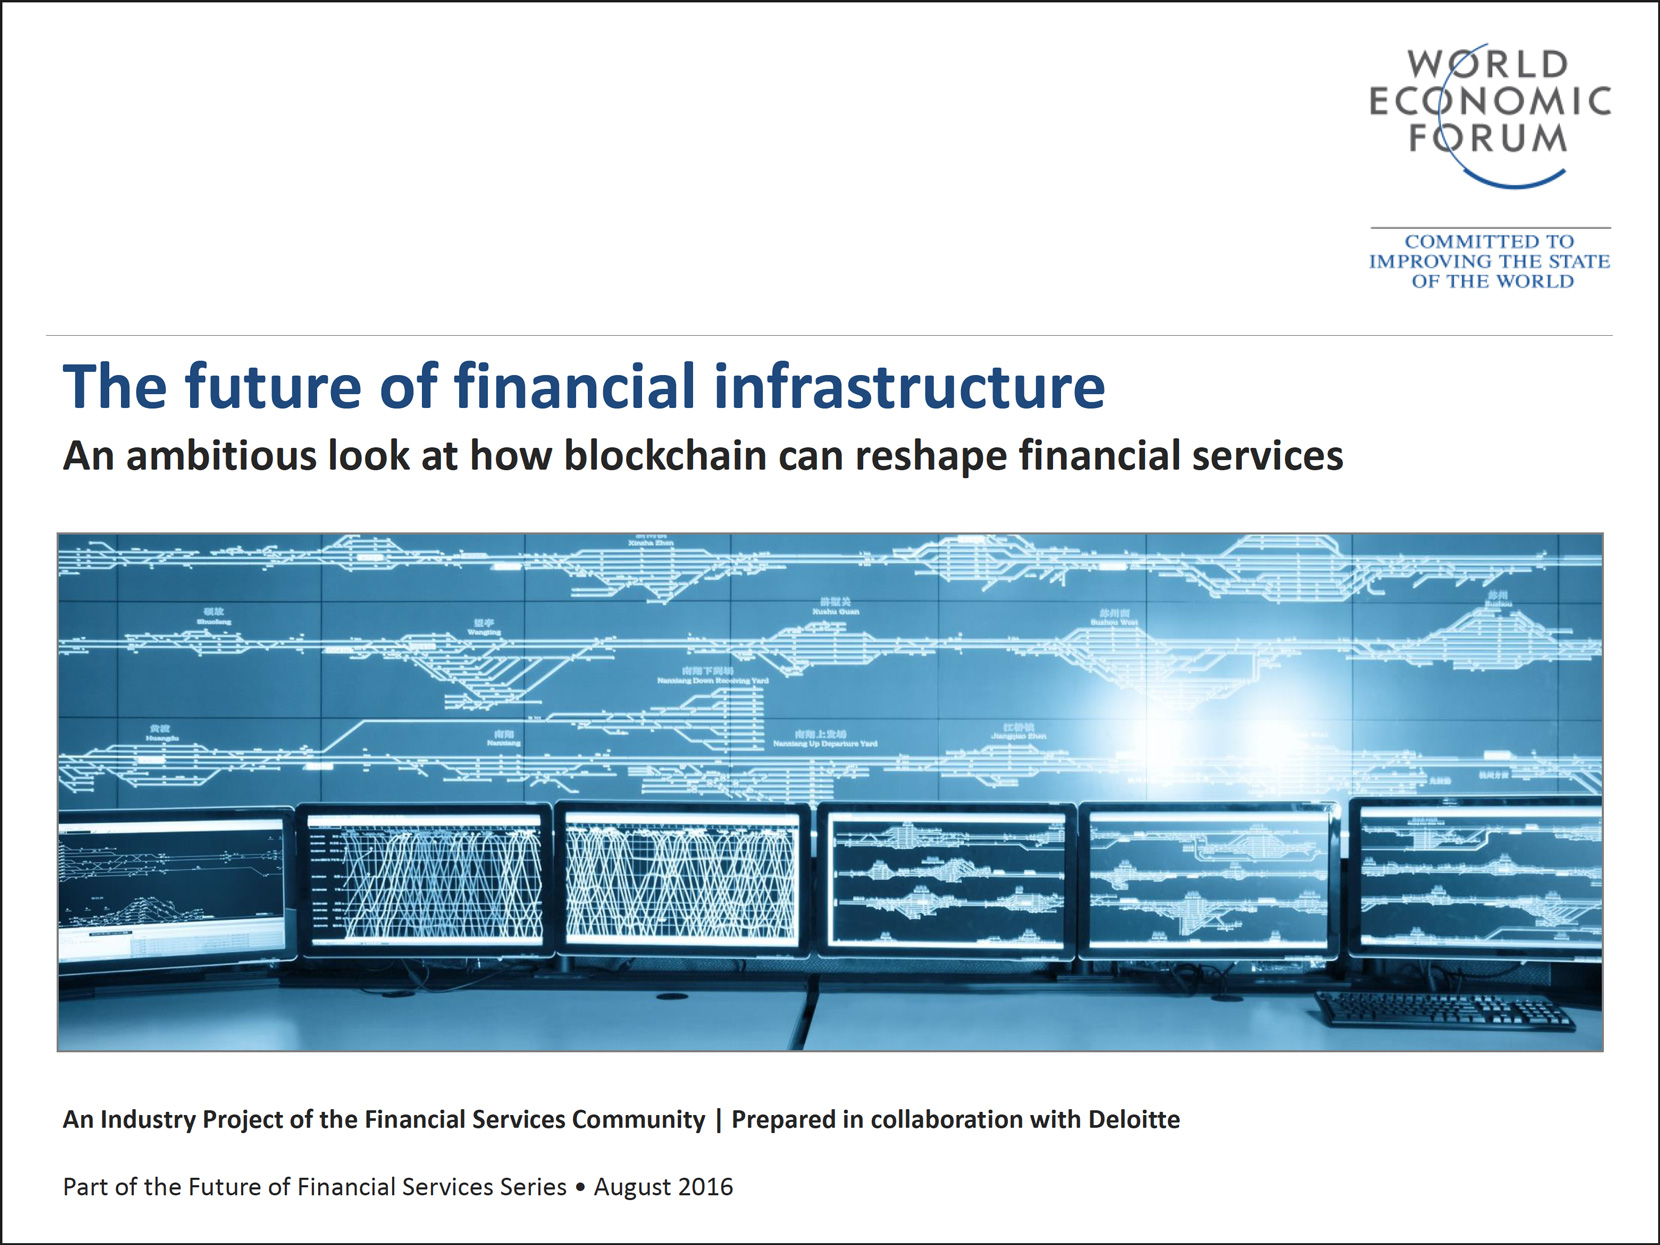 Future-of-financial-infrastructure.jpg